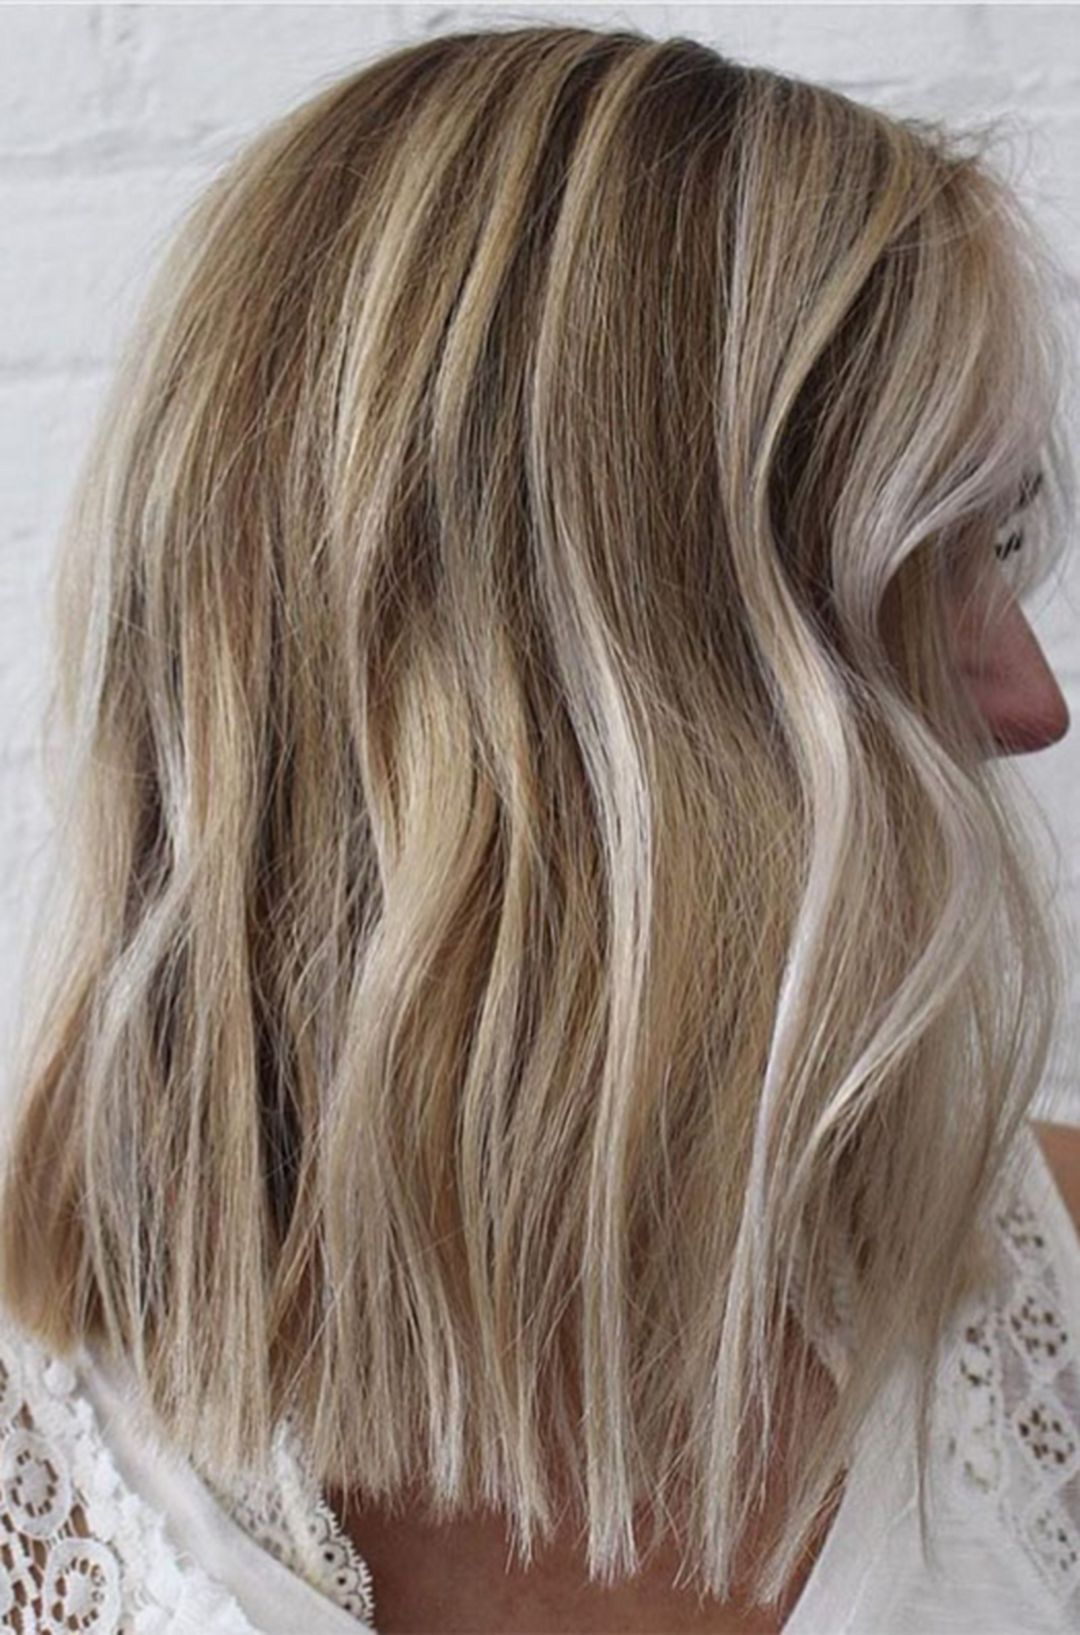 40 Awesome Blonde Hairstyles Highlights For Women Looks More Pretty